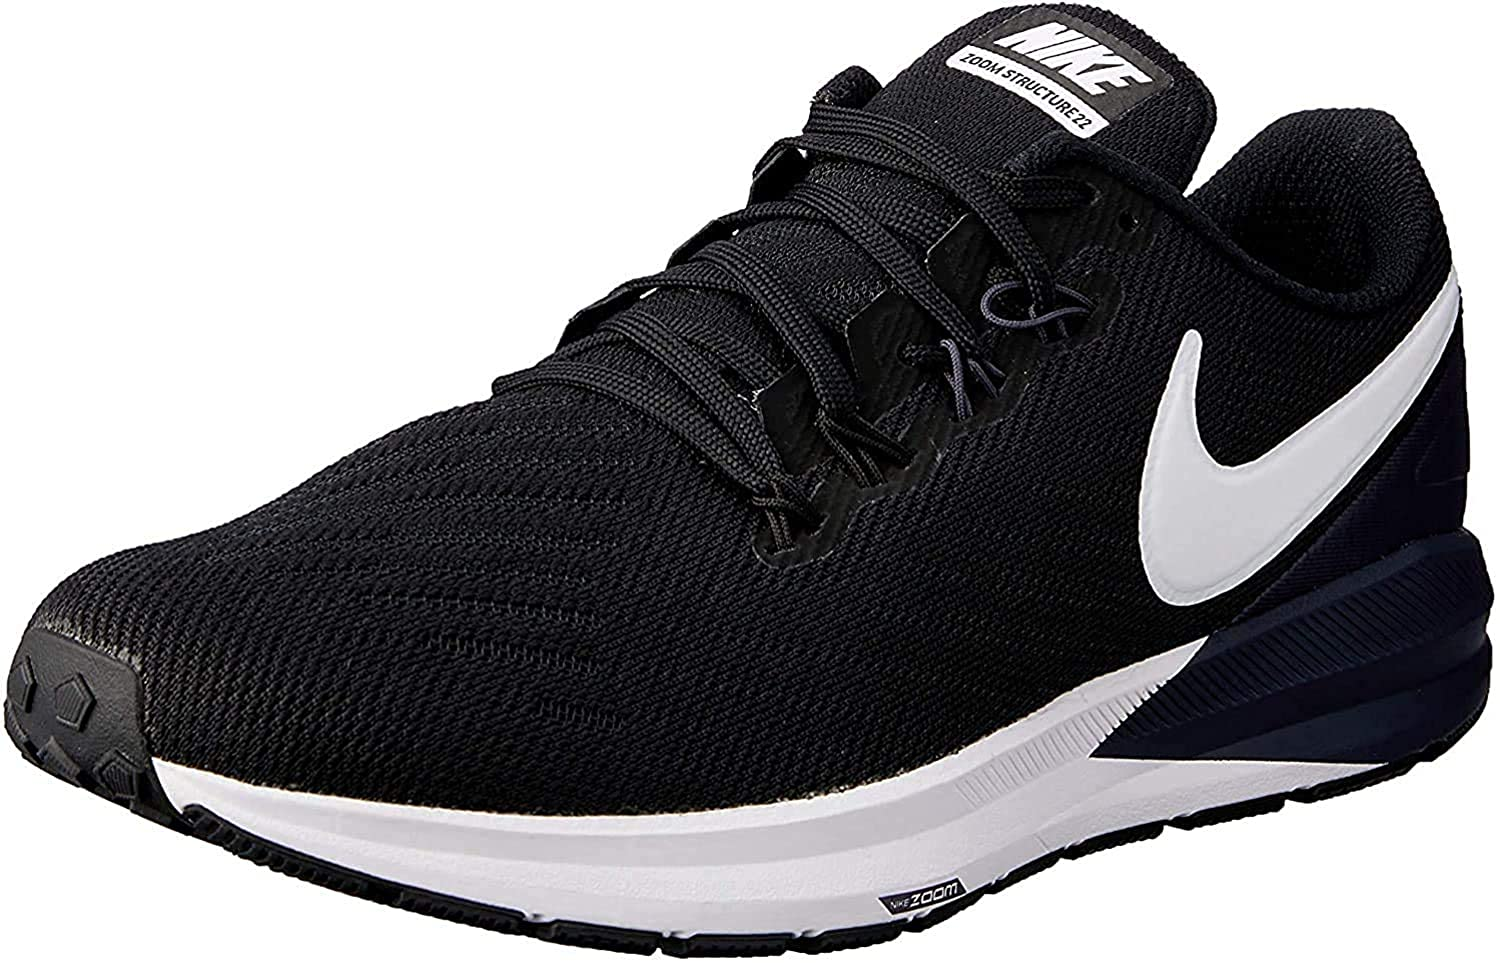 Air Zoom Structure 22 Running Shoes